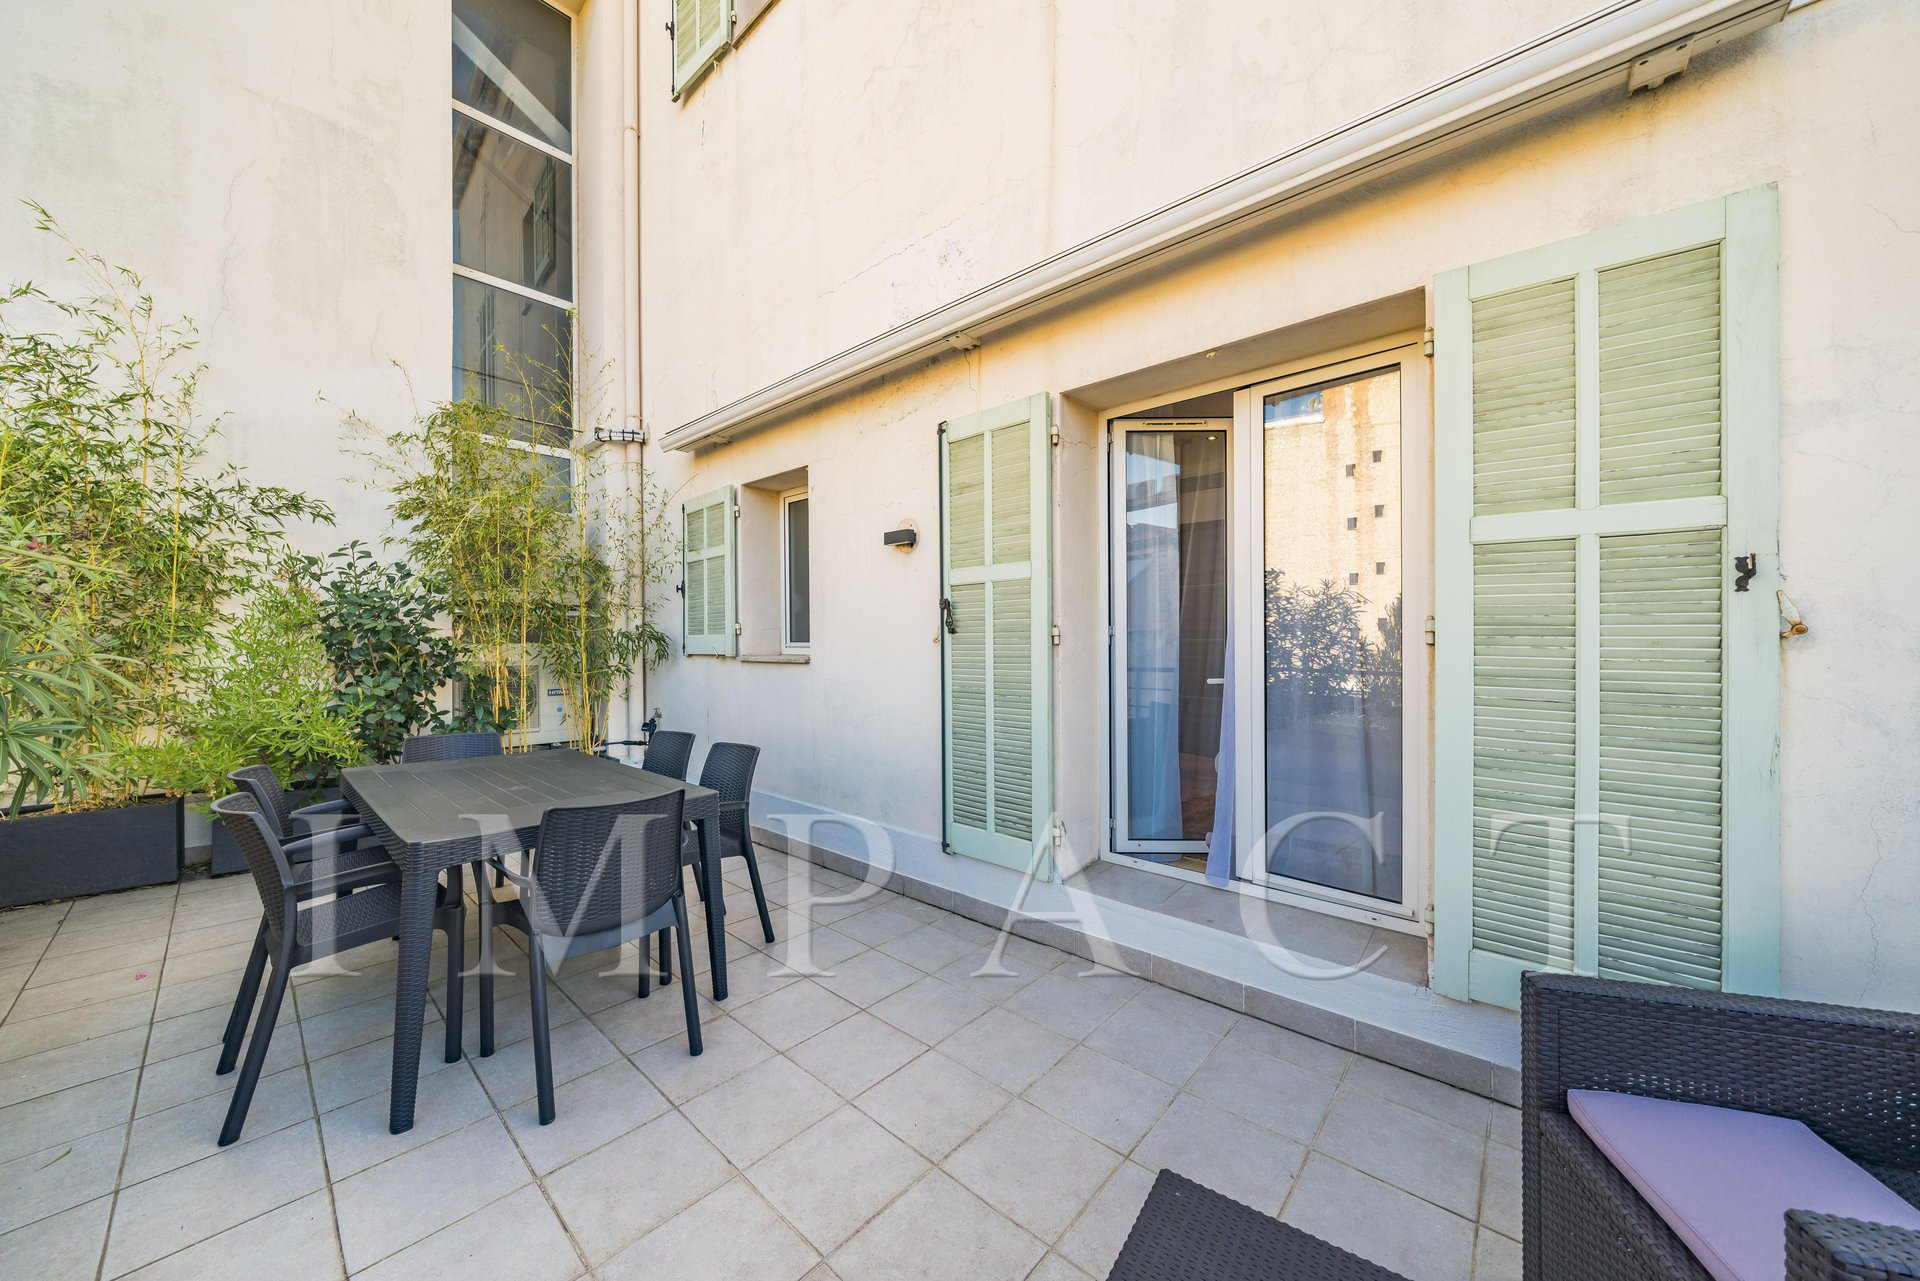 Apartment 4 bedrooms for sale Cannes Banane rue d'Antibes